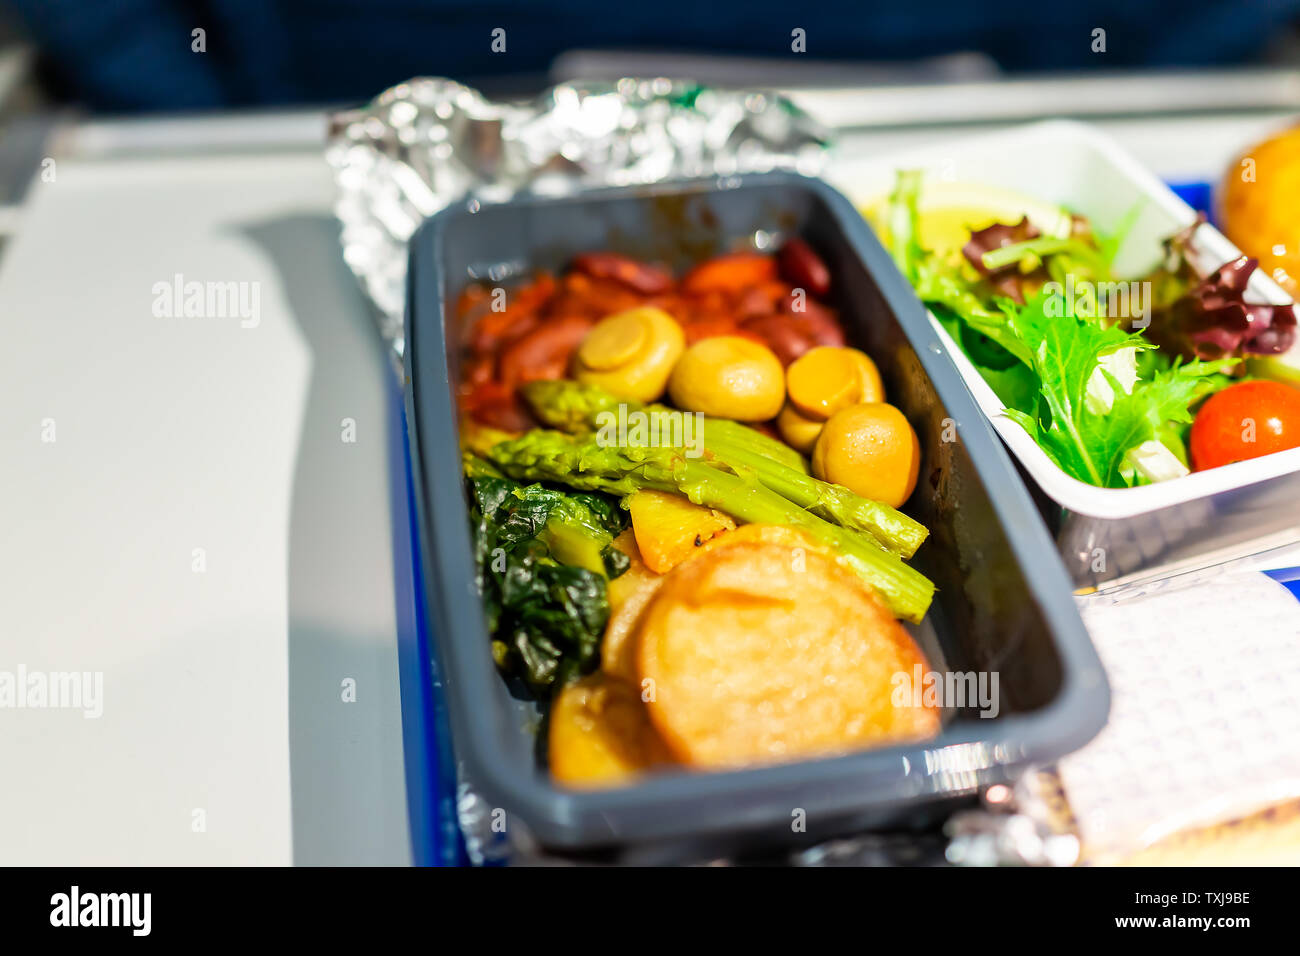 Healthy vegan vegetarian food hot vgml meal macro closeup on airplane flight with potato mushrooms asparagus vegetables on tray with salad - Stock Image